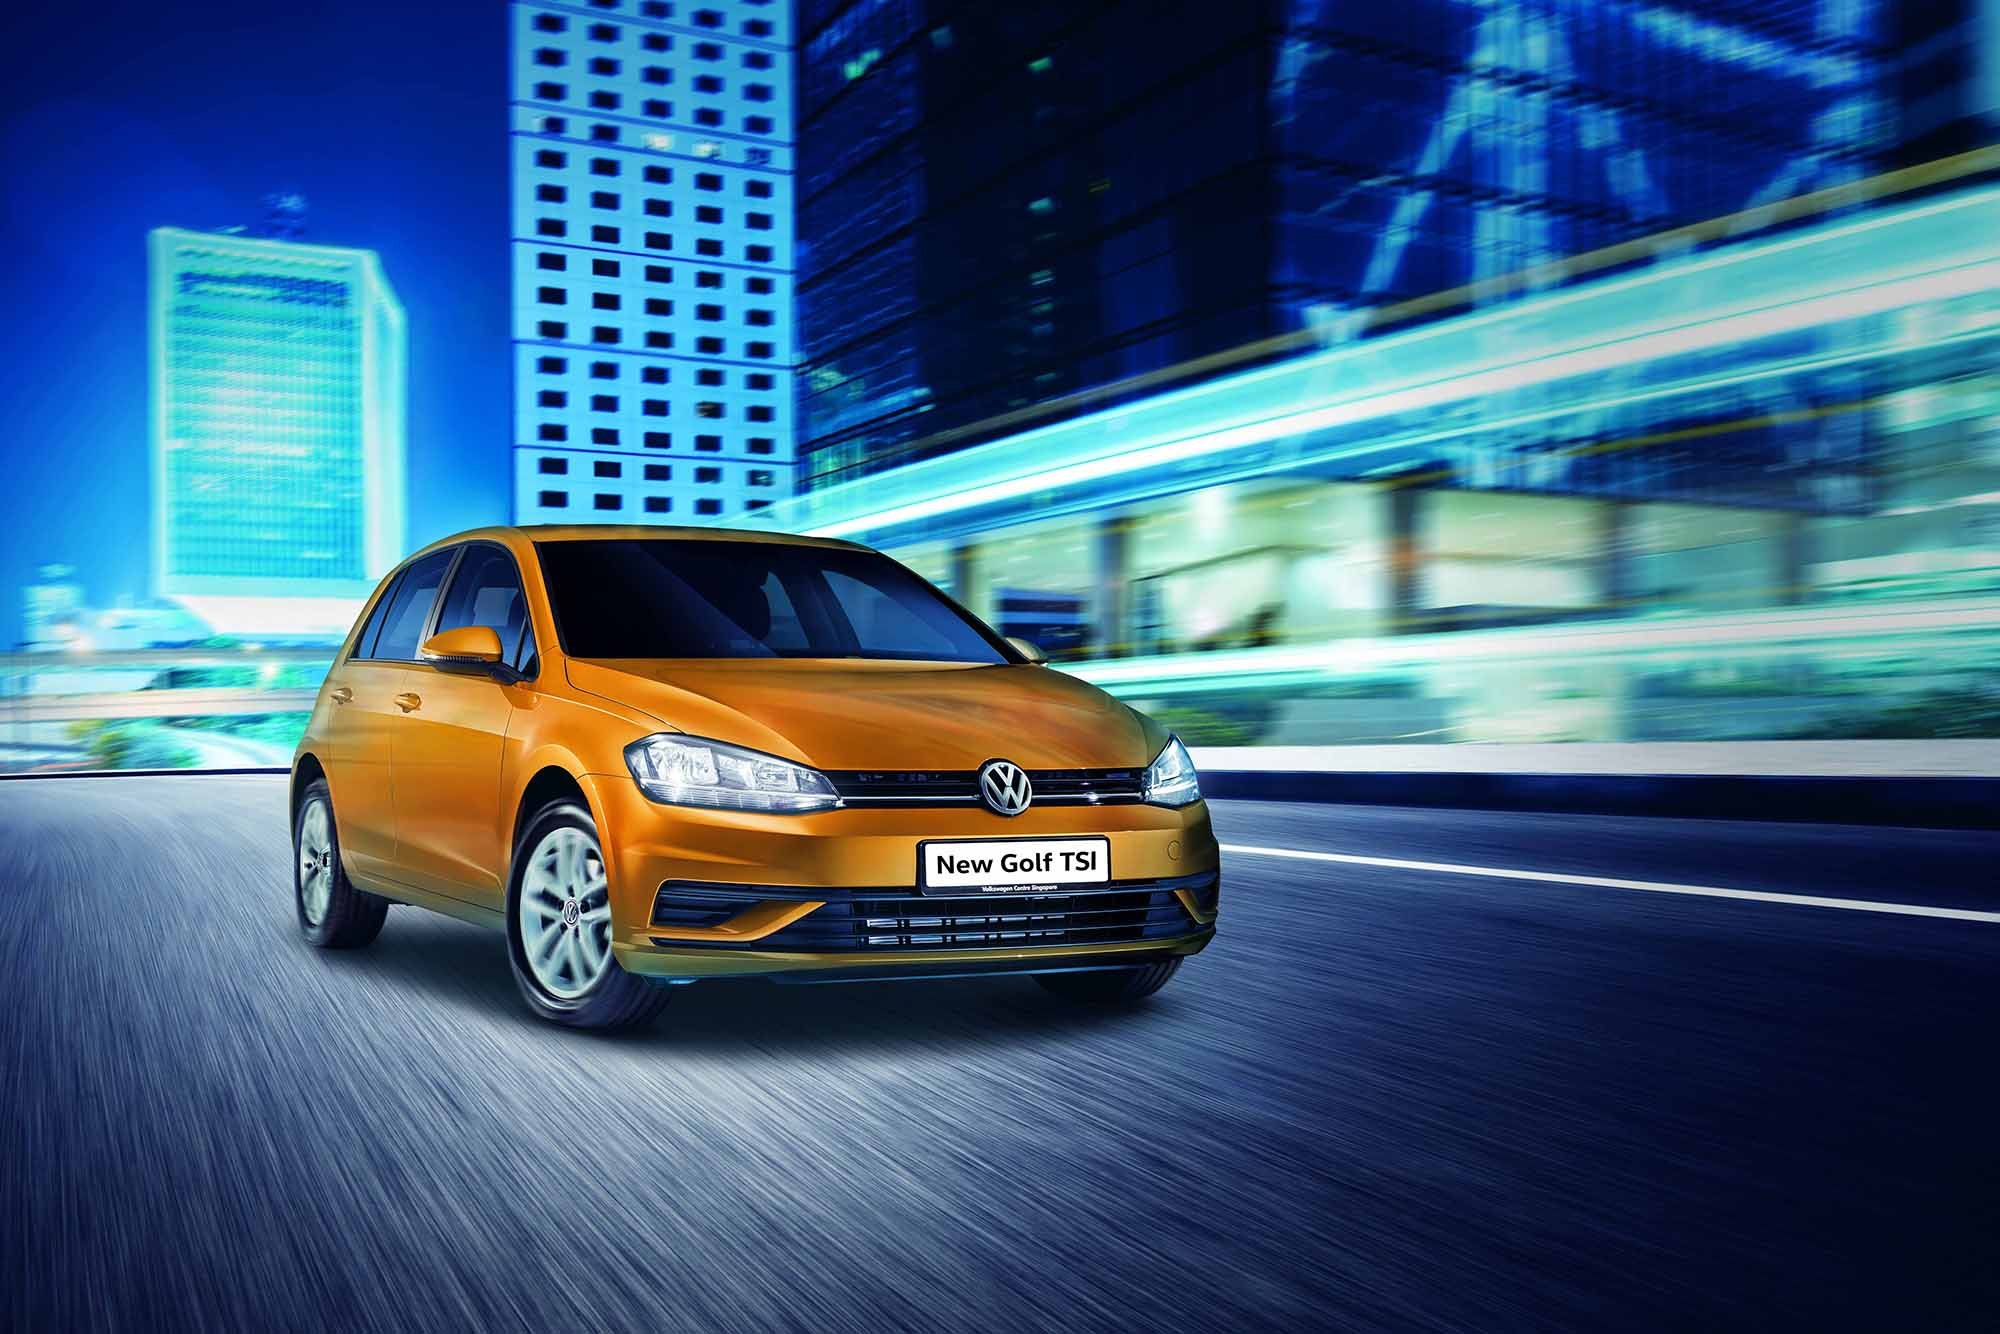 Why the Volkswagen Golf TSI is the perfect hatchback for Singapore roads